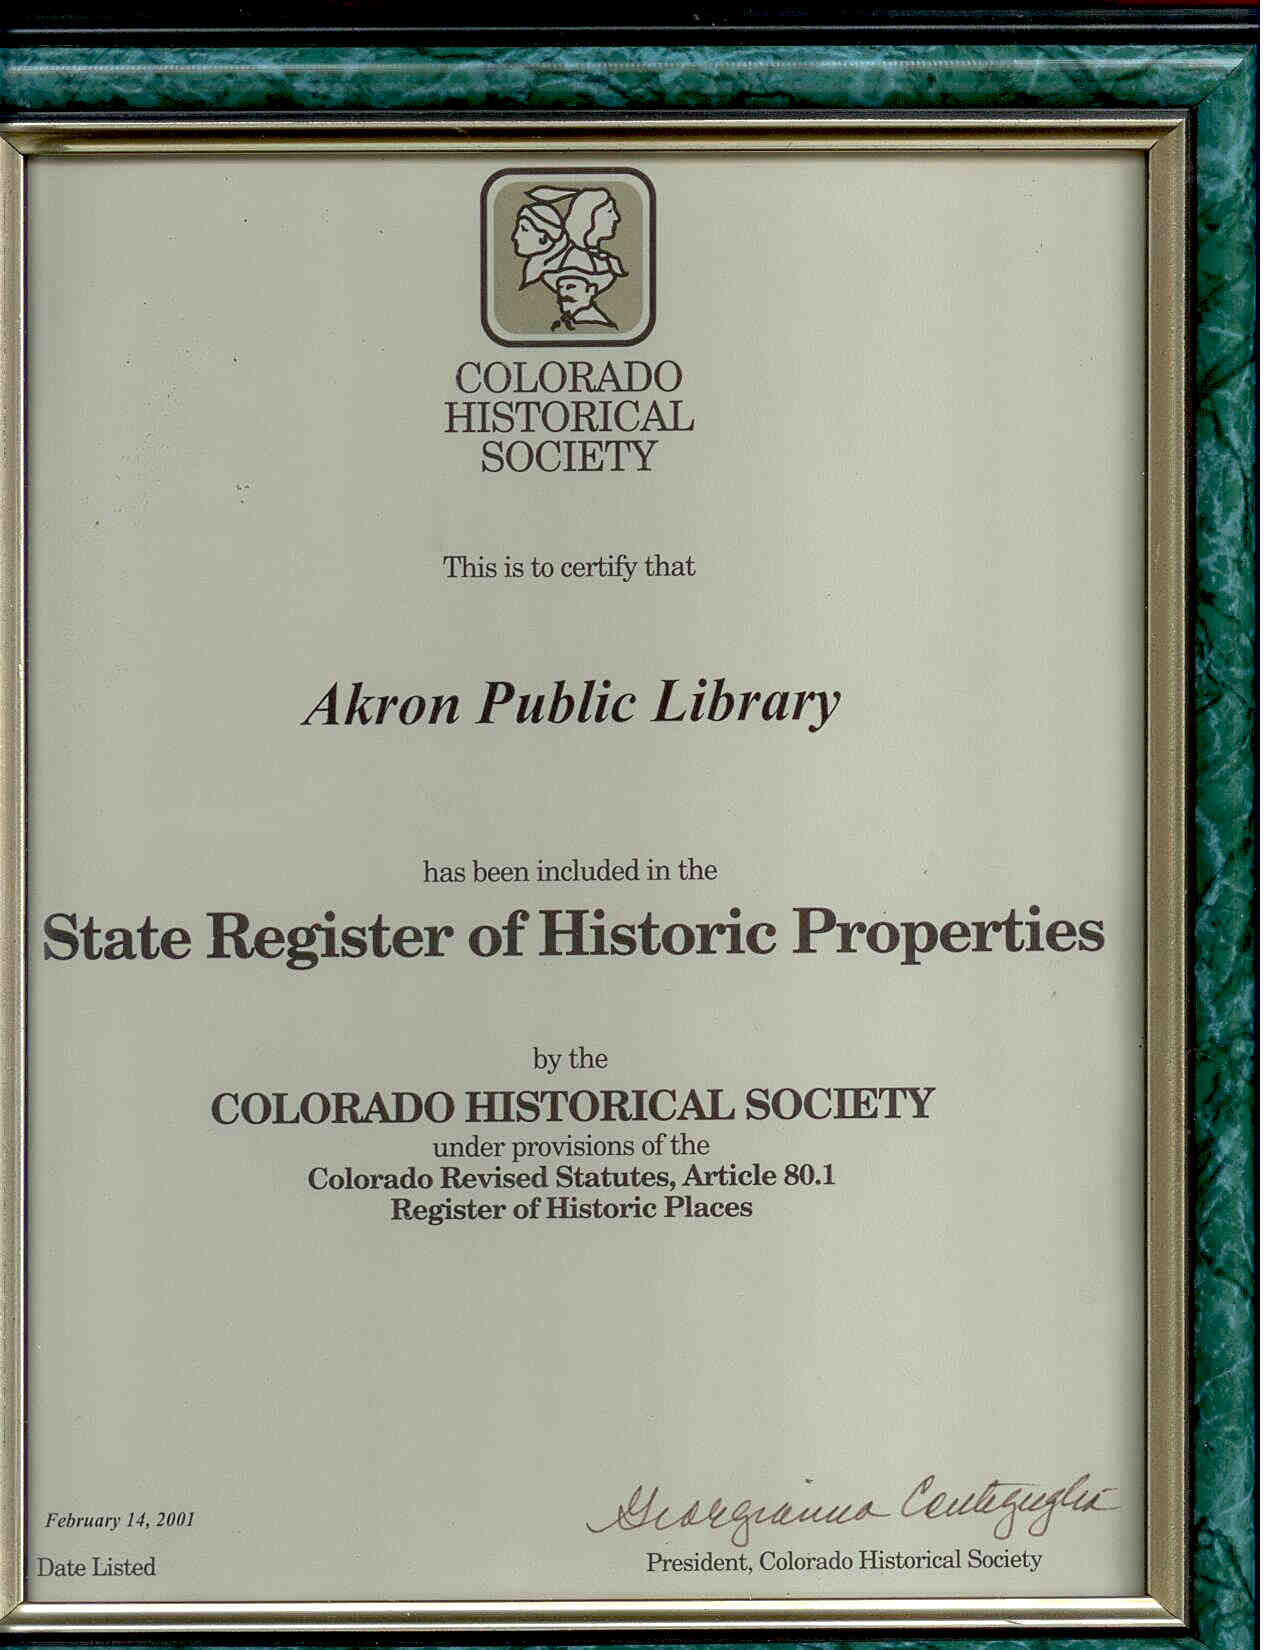 framed certificate of building's addition to state register of historic places